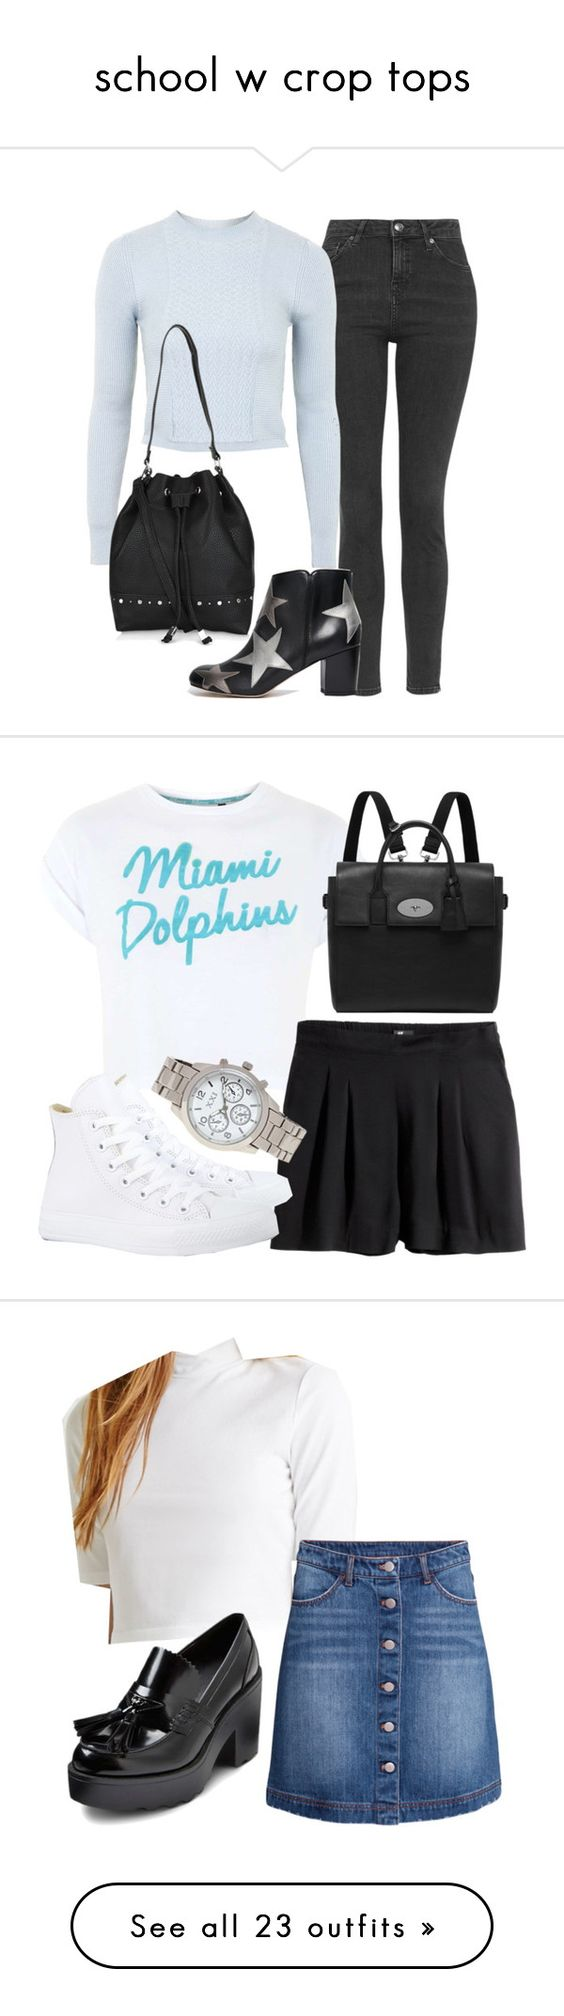 """school w crop tops"" by littlemixmakeup ❤ liked on Polyvore"